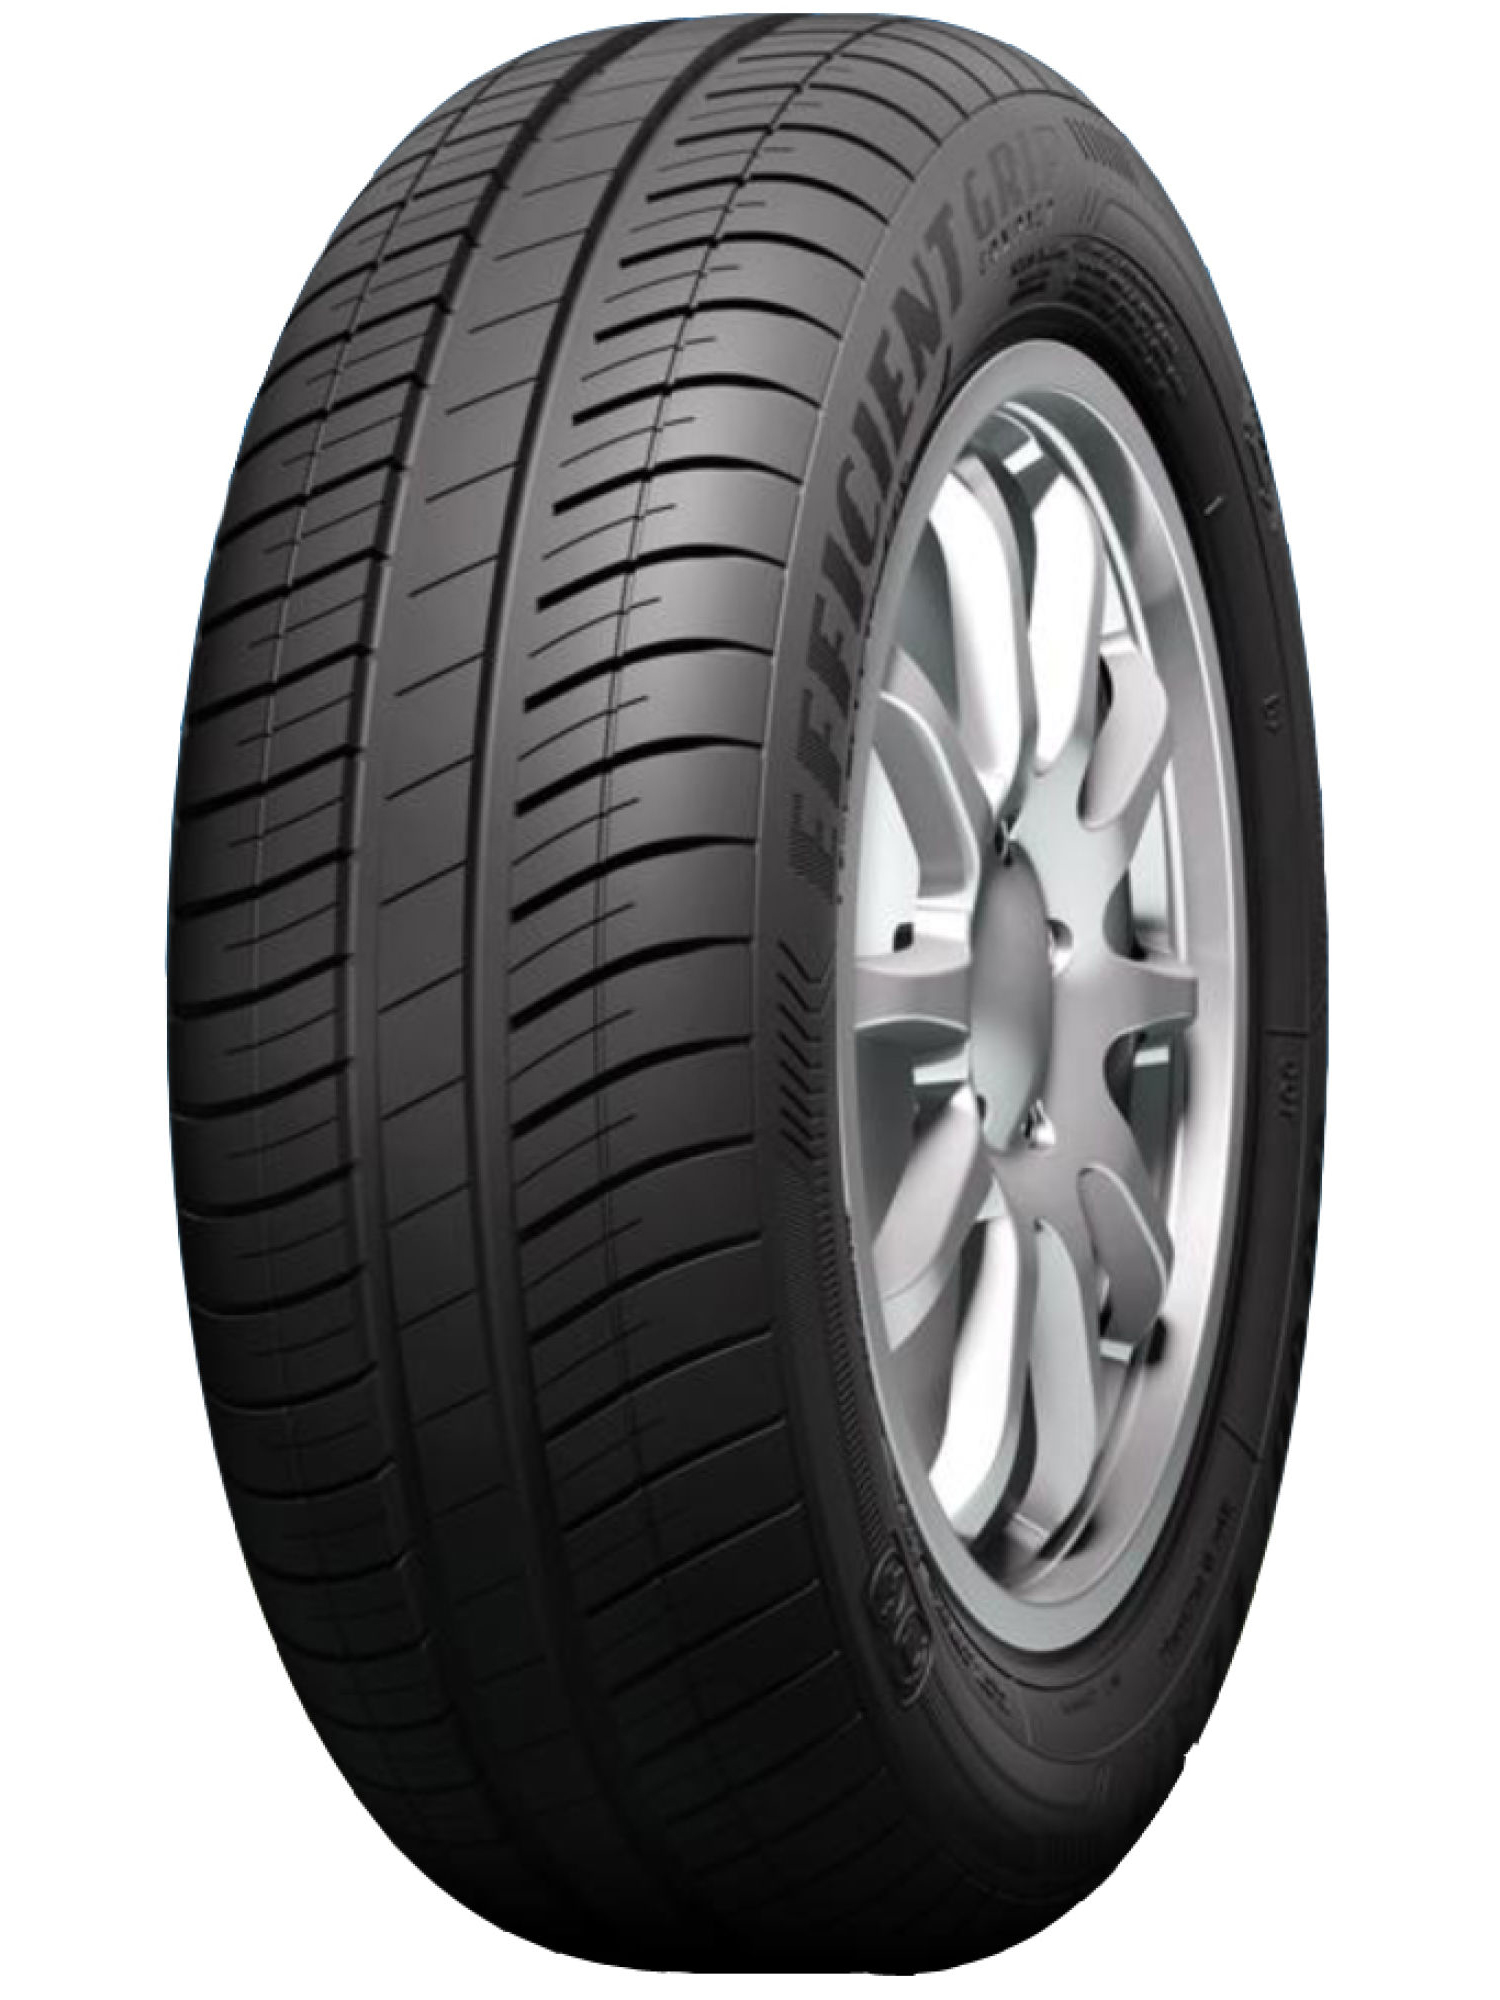 Anvelopa vara GOODYEAR EFFICIENTGRIP 195/60 R15 88H